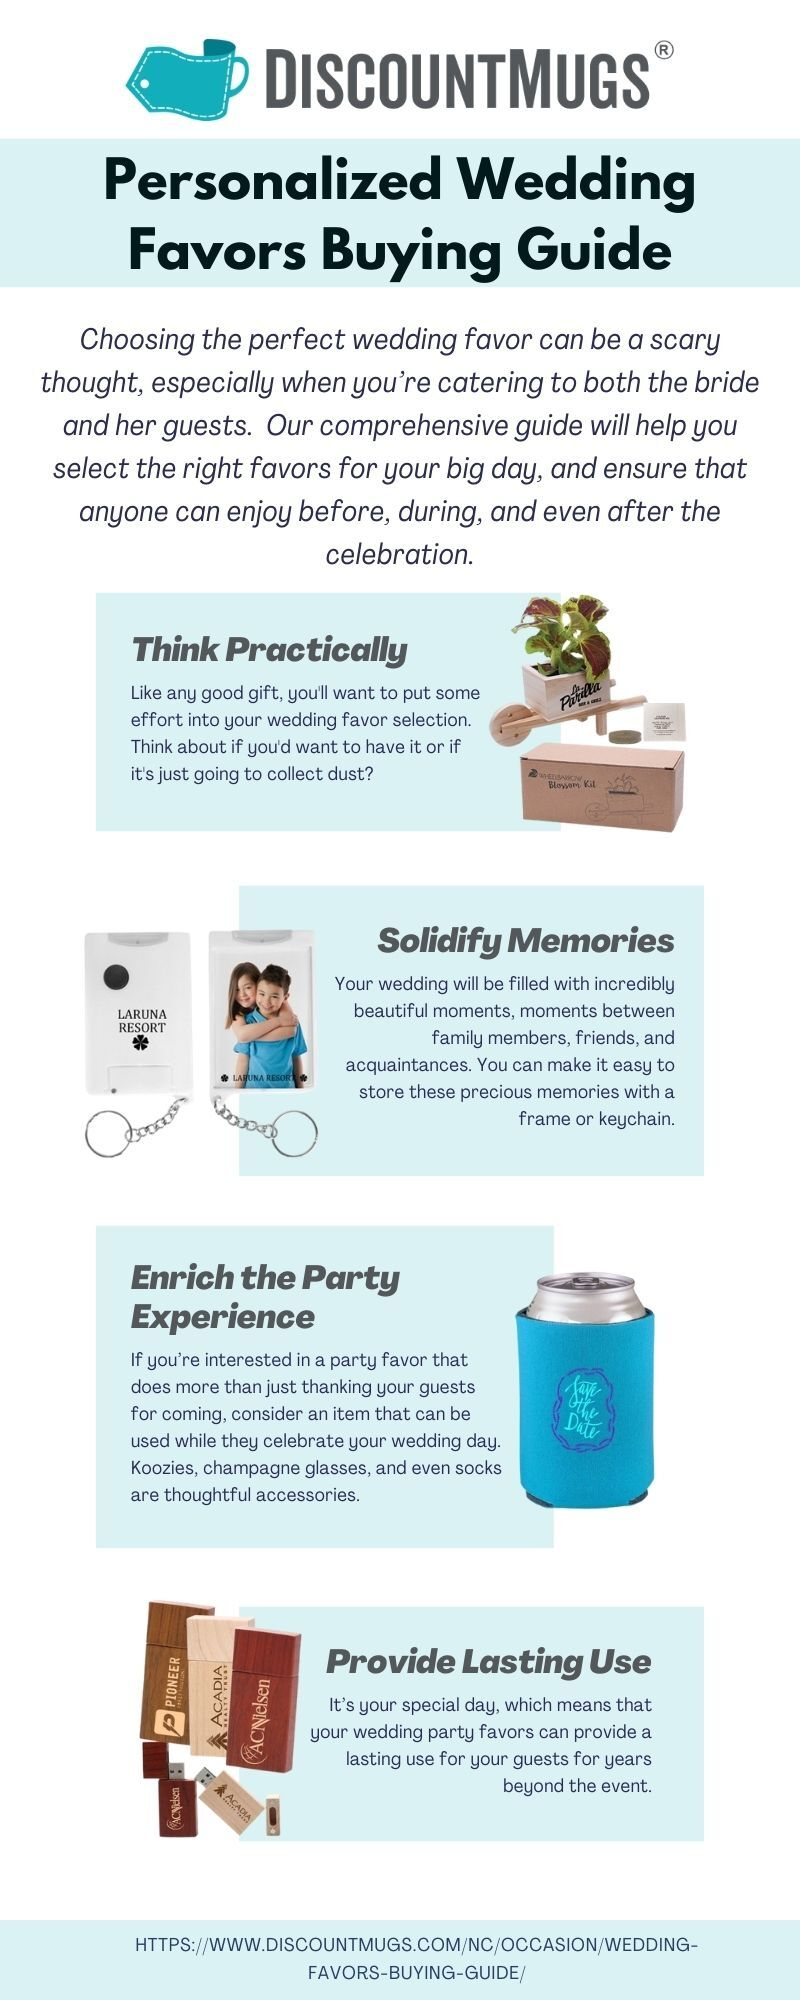 Personalized Wedding Favors Buying Guide Infographic